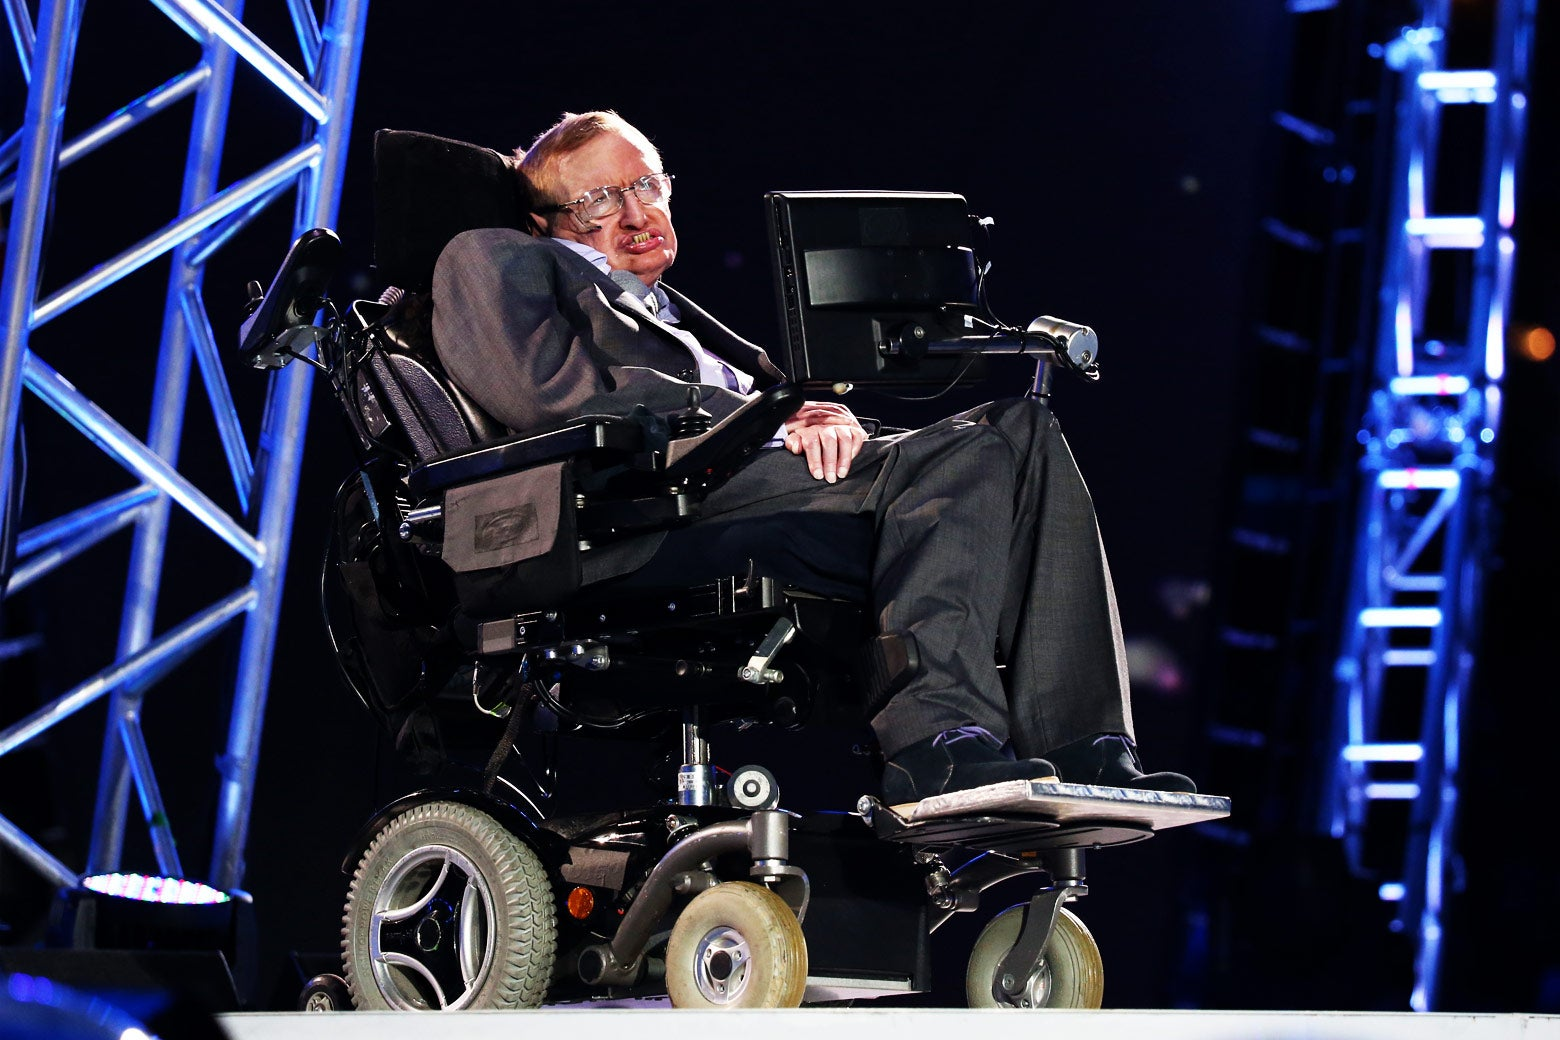 Professor Stephen Hawking speaks during the London 2012 Paralympics at the on Aug. 29, 2012, in London.